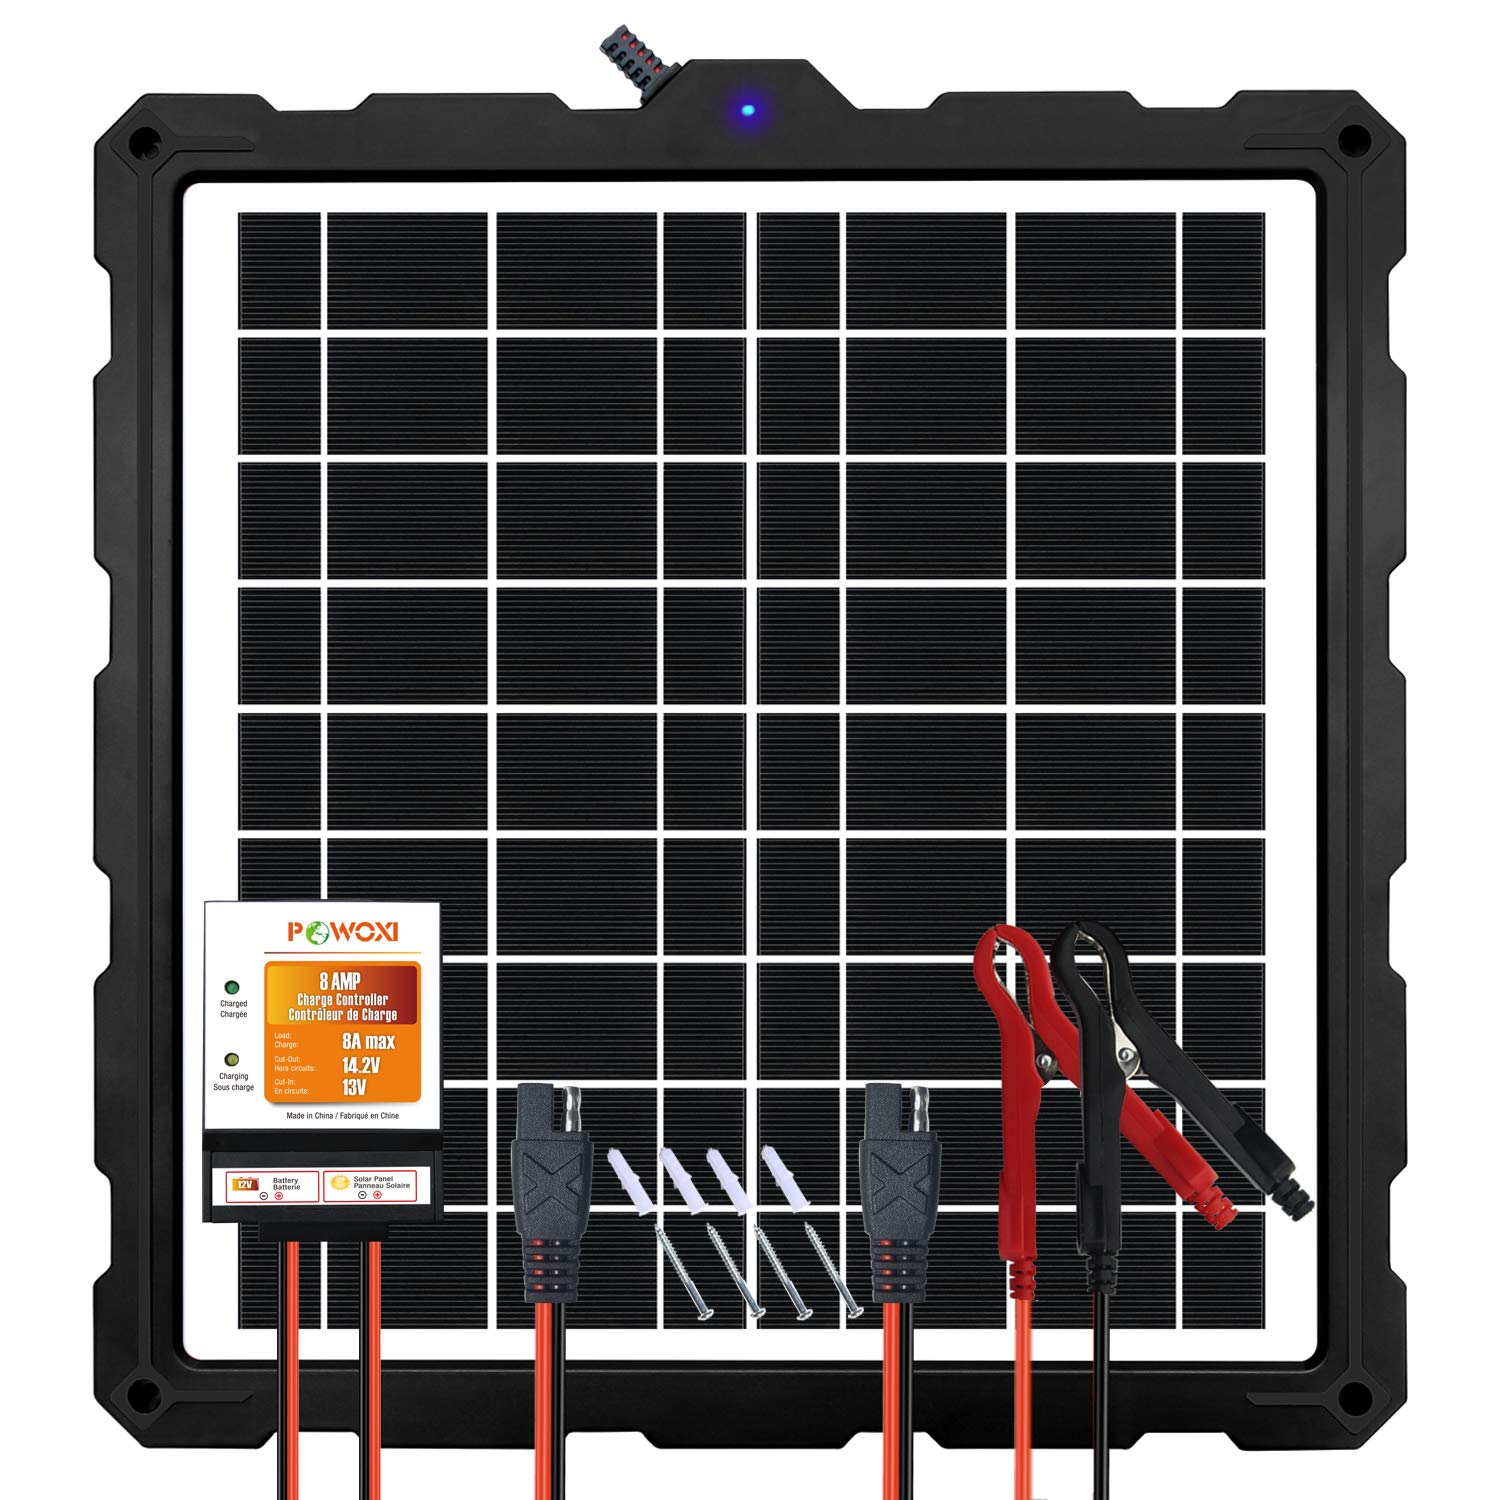 POWOXI-Upgraded-20W-Solar-Battery-Charger-Maintainer, External Smart 3-Stages PWM Charge Controller, 12V Solar Panel Trickle Charging Kit for Car, Marine, Motorcycle, RV, etc by POWOXI